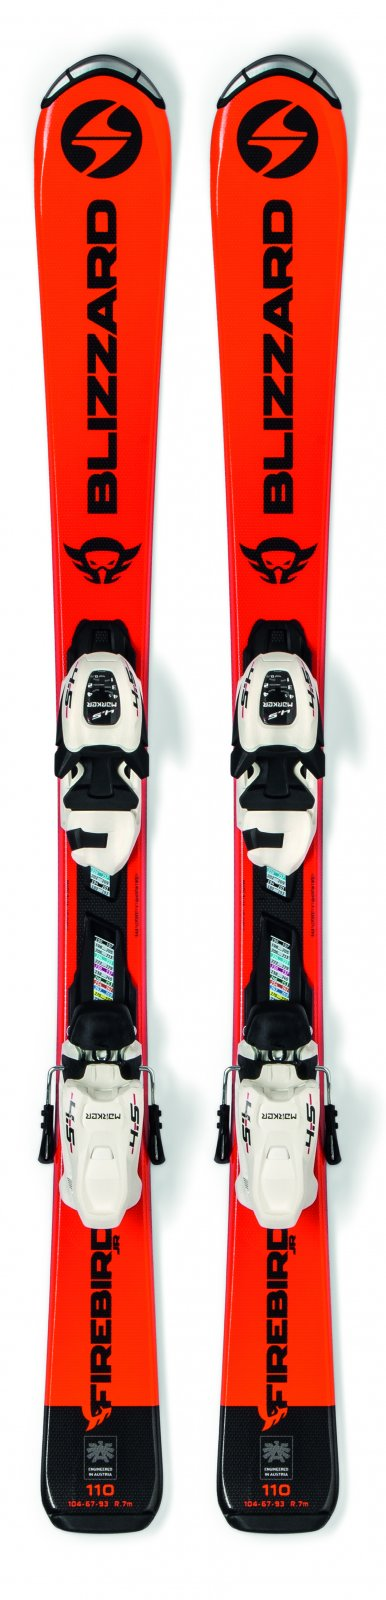 2020 Blizzard Firebird Jr Youth Skis w/ FDT 4.5 Binding